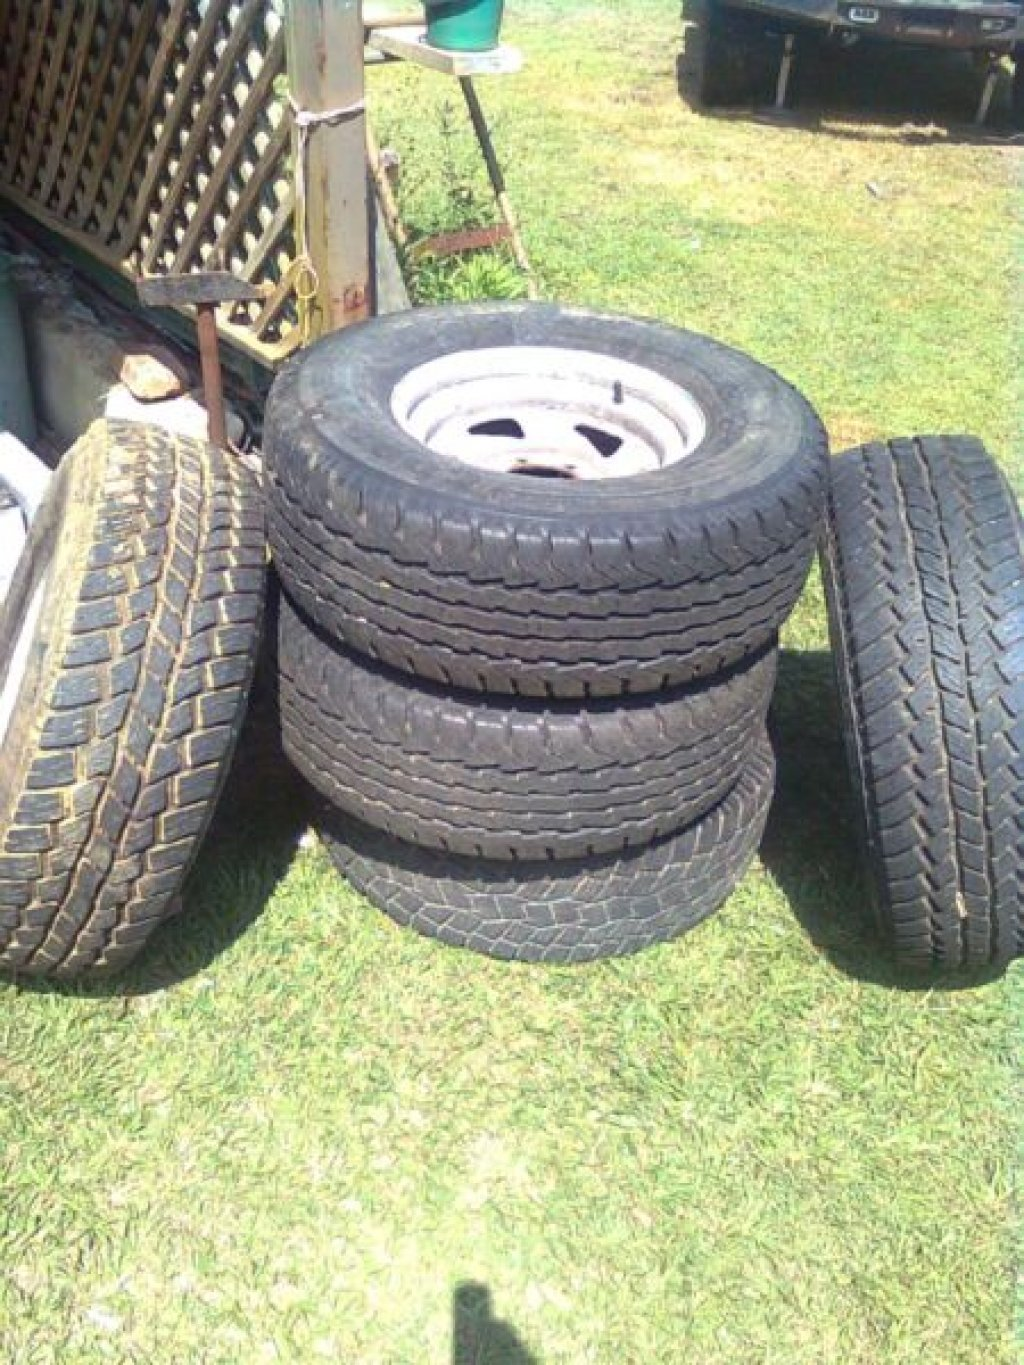 5 Galvanised 6 Stud Nissan Rims and Tyres